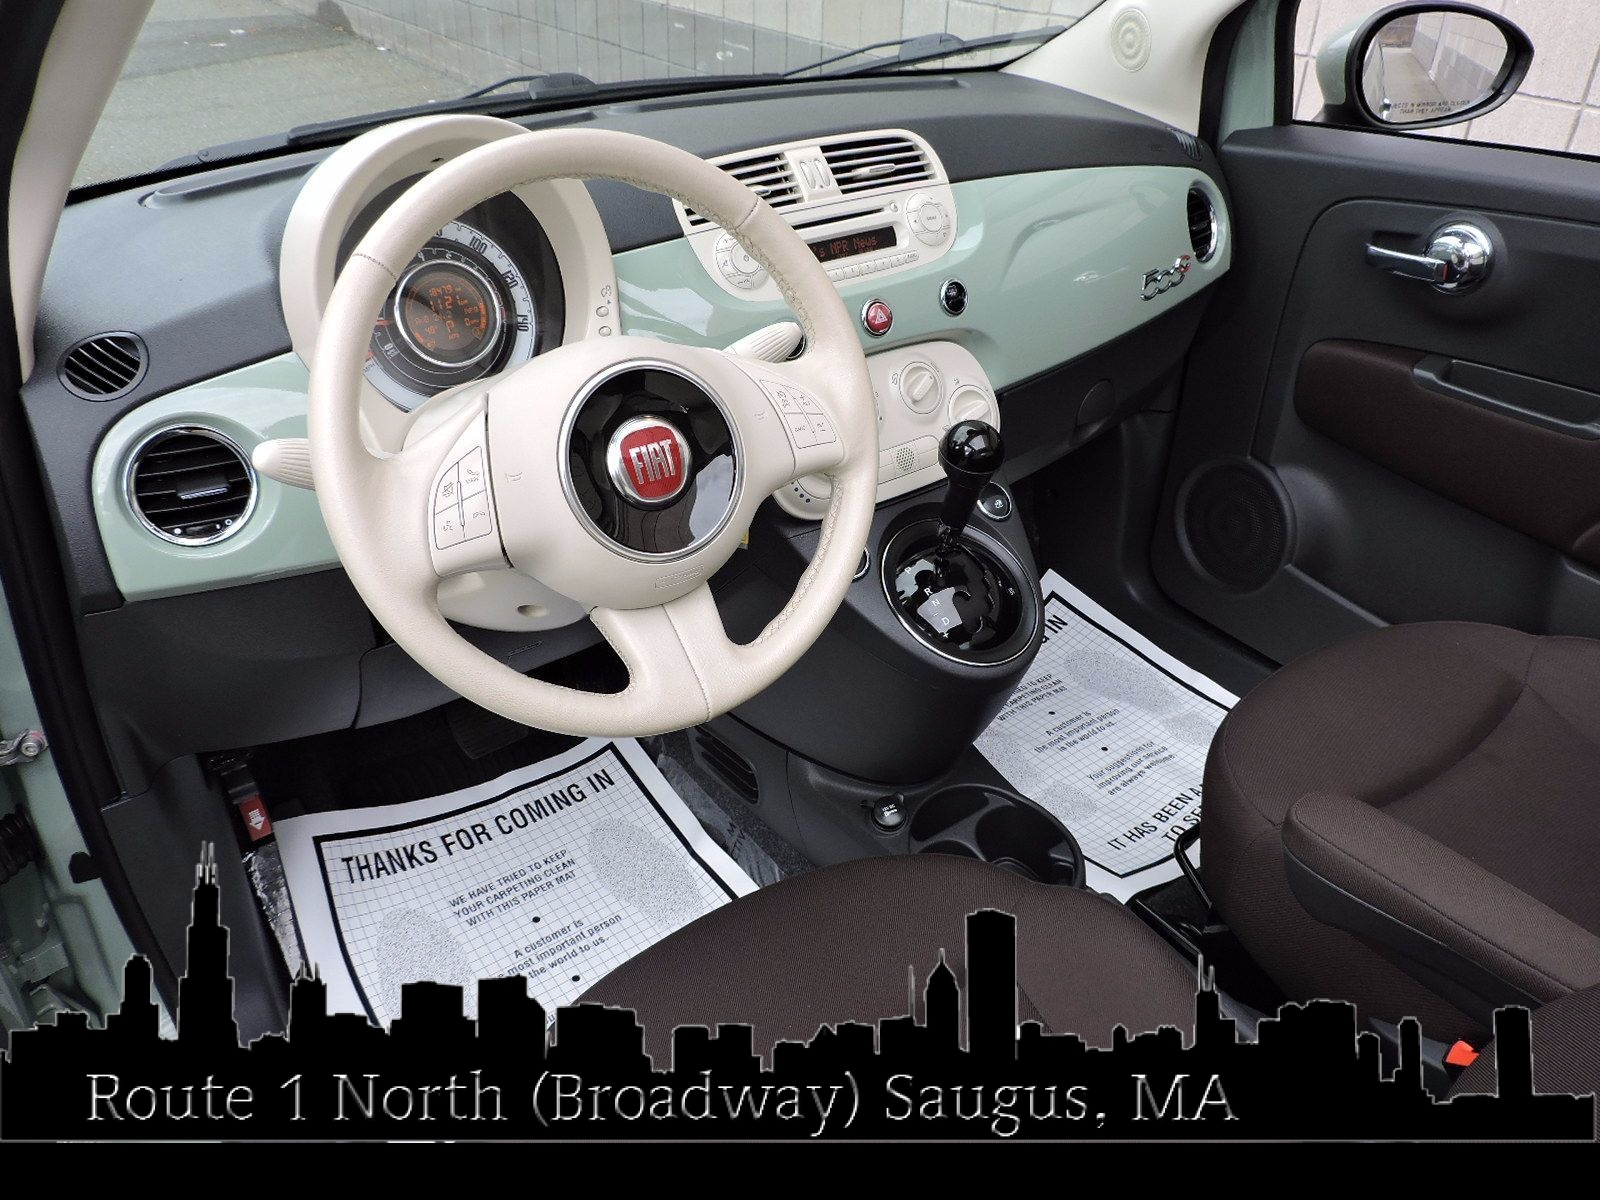 2013 FIAT 500 Reviews and Rating | Motor Trend